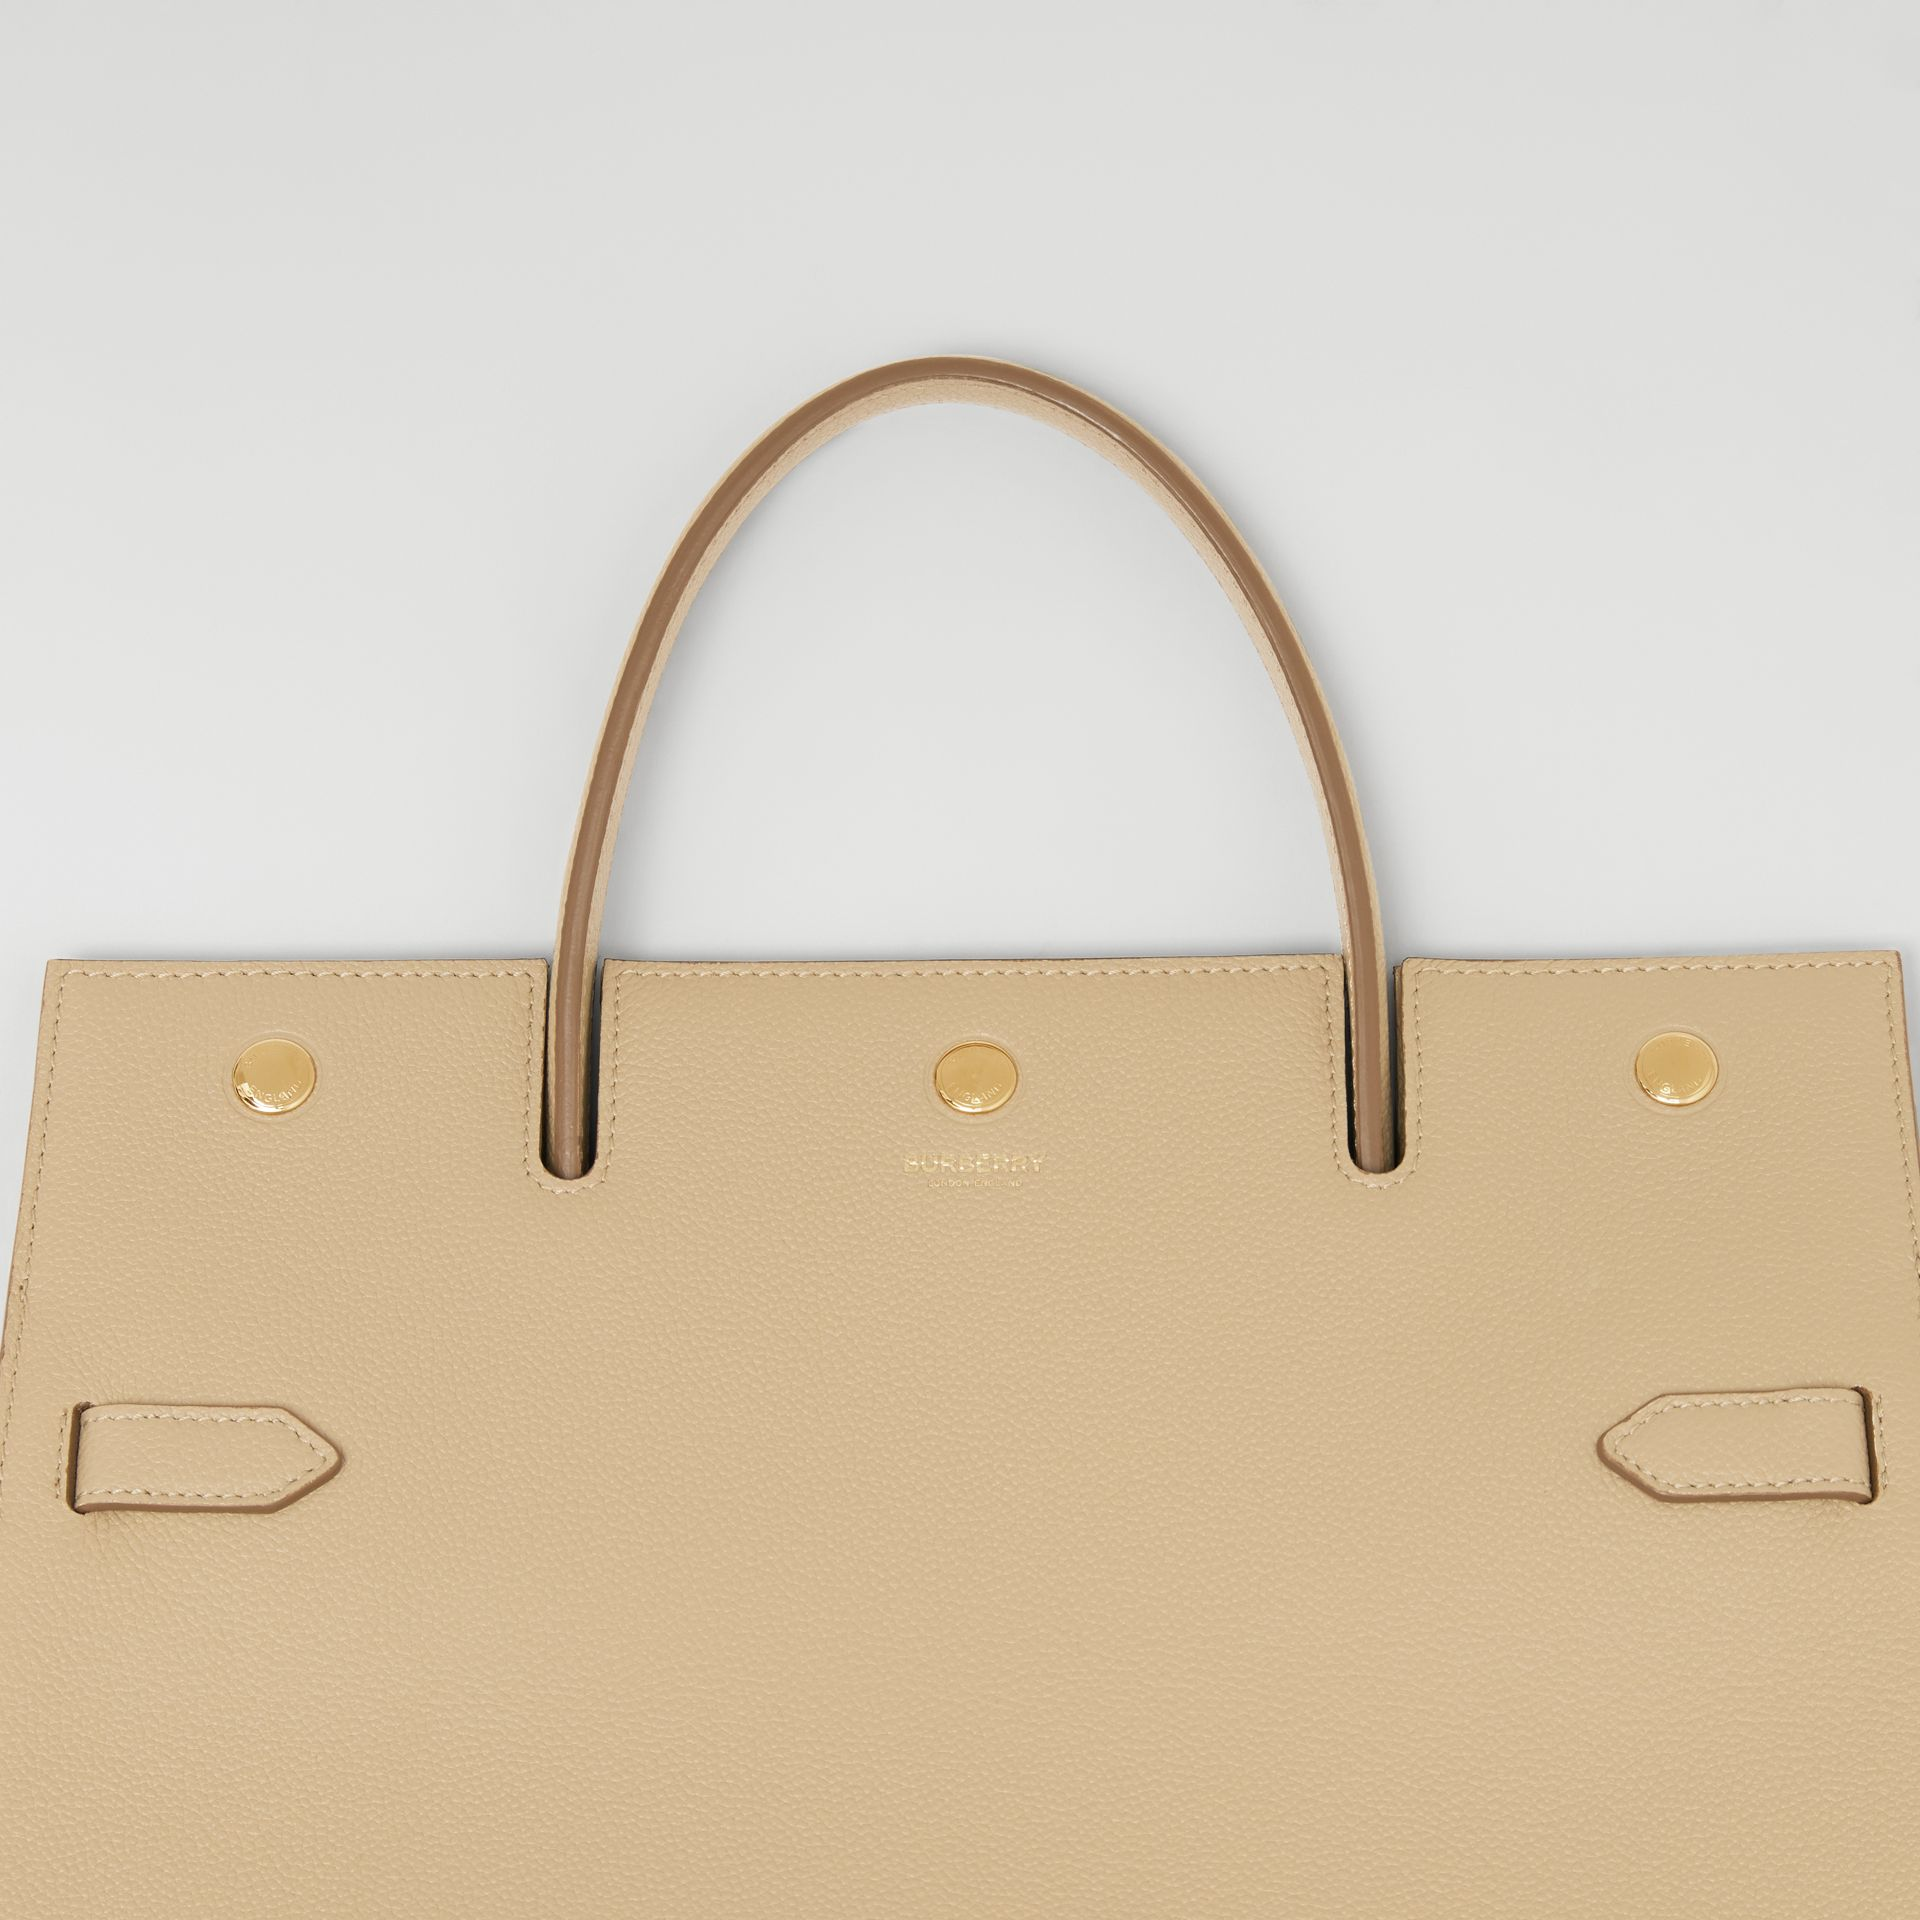 Medium Leather Title Bag in Honey - Women | Burberry United Kingdom - gallery image 8